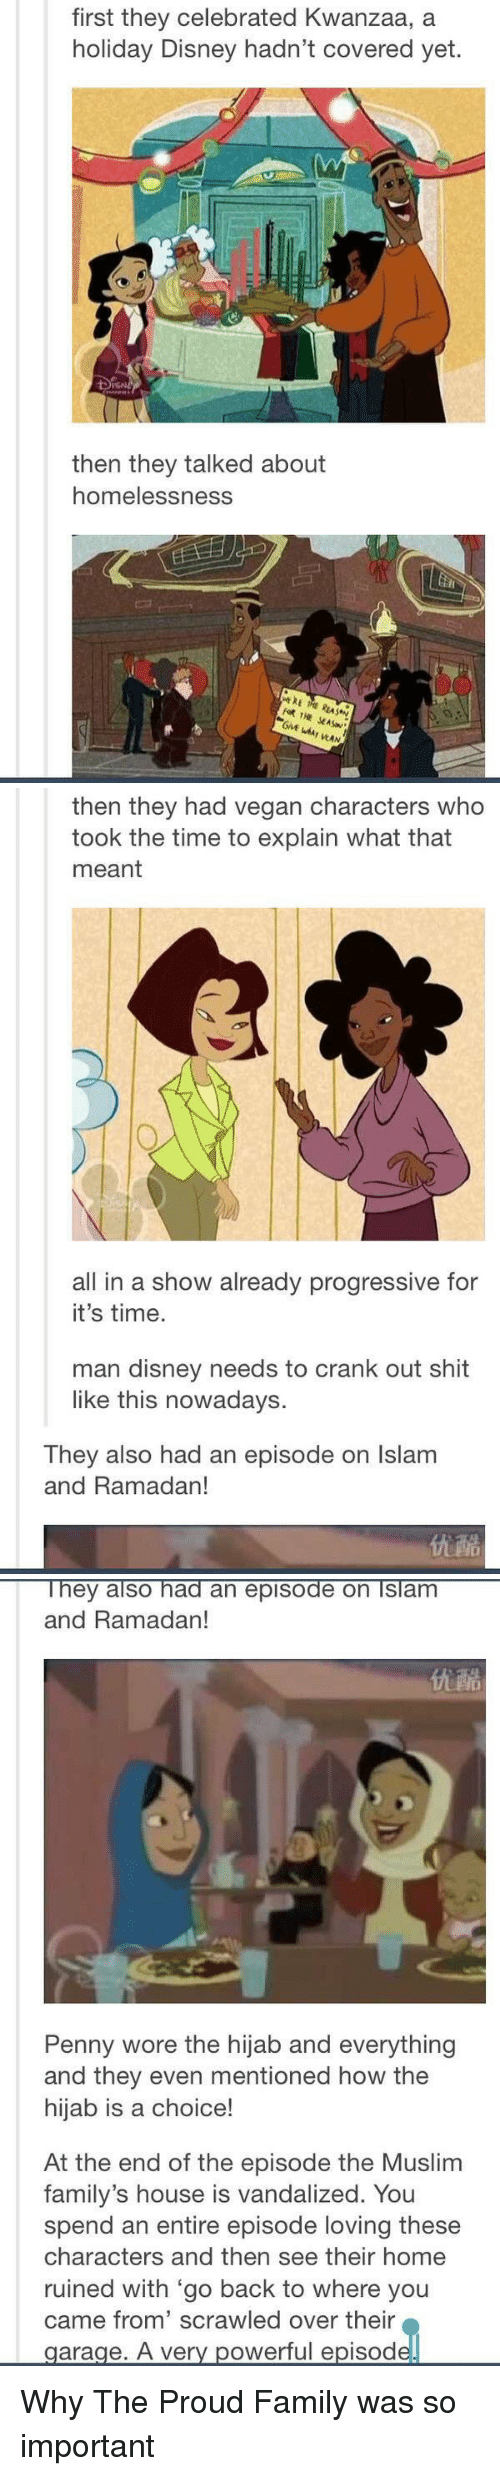 proud family: first they celebrated Kwanzaa, a  holiday Disney hadn't covered yet.  then they talked about  homelessness.  THE  WAN   then they had vegan characters who  took the time to explain what that  meant  all in a show already progressive for  it's time.  man disney needs to crank out shit  like this nowadays.  They also had an episode on lslam  and Ramadan!   They also had an episode on Islam  and Ramadan!  Penny wore the hijab and everything  and they even mentioned how the  hijab is a choice!  At the end of the episode the Muslim  family's house is vandalized. You  spend an entire episode loving these  characters and then see their home  ruined with go back to where you  came from' scrawled over their  garage. A very powerful episod Why The Proud Family was so important